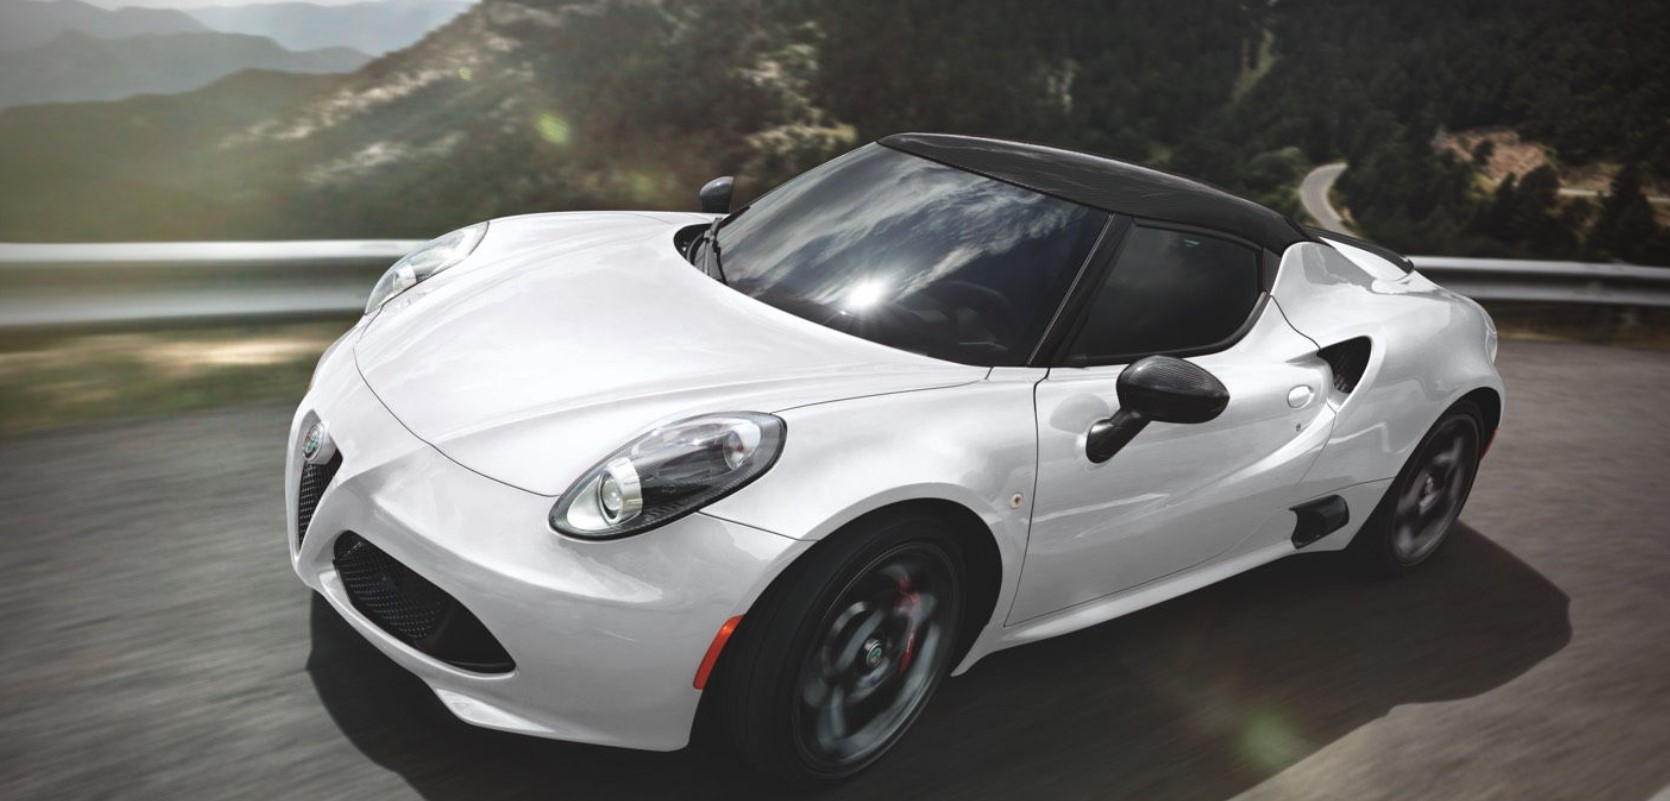 2018 Alfa Romeo 4c Coupe Of Anaheim Hills Msrp White Front Exterior